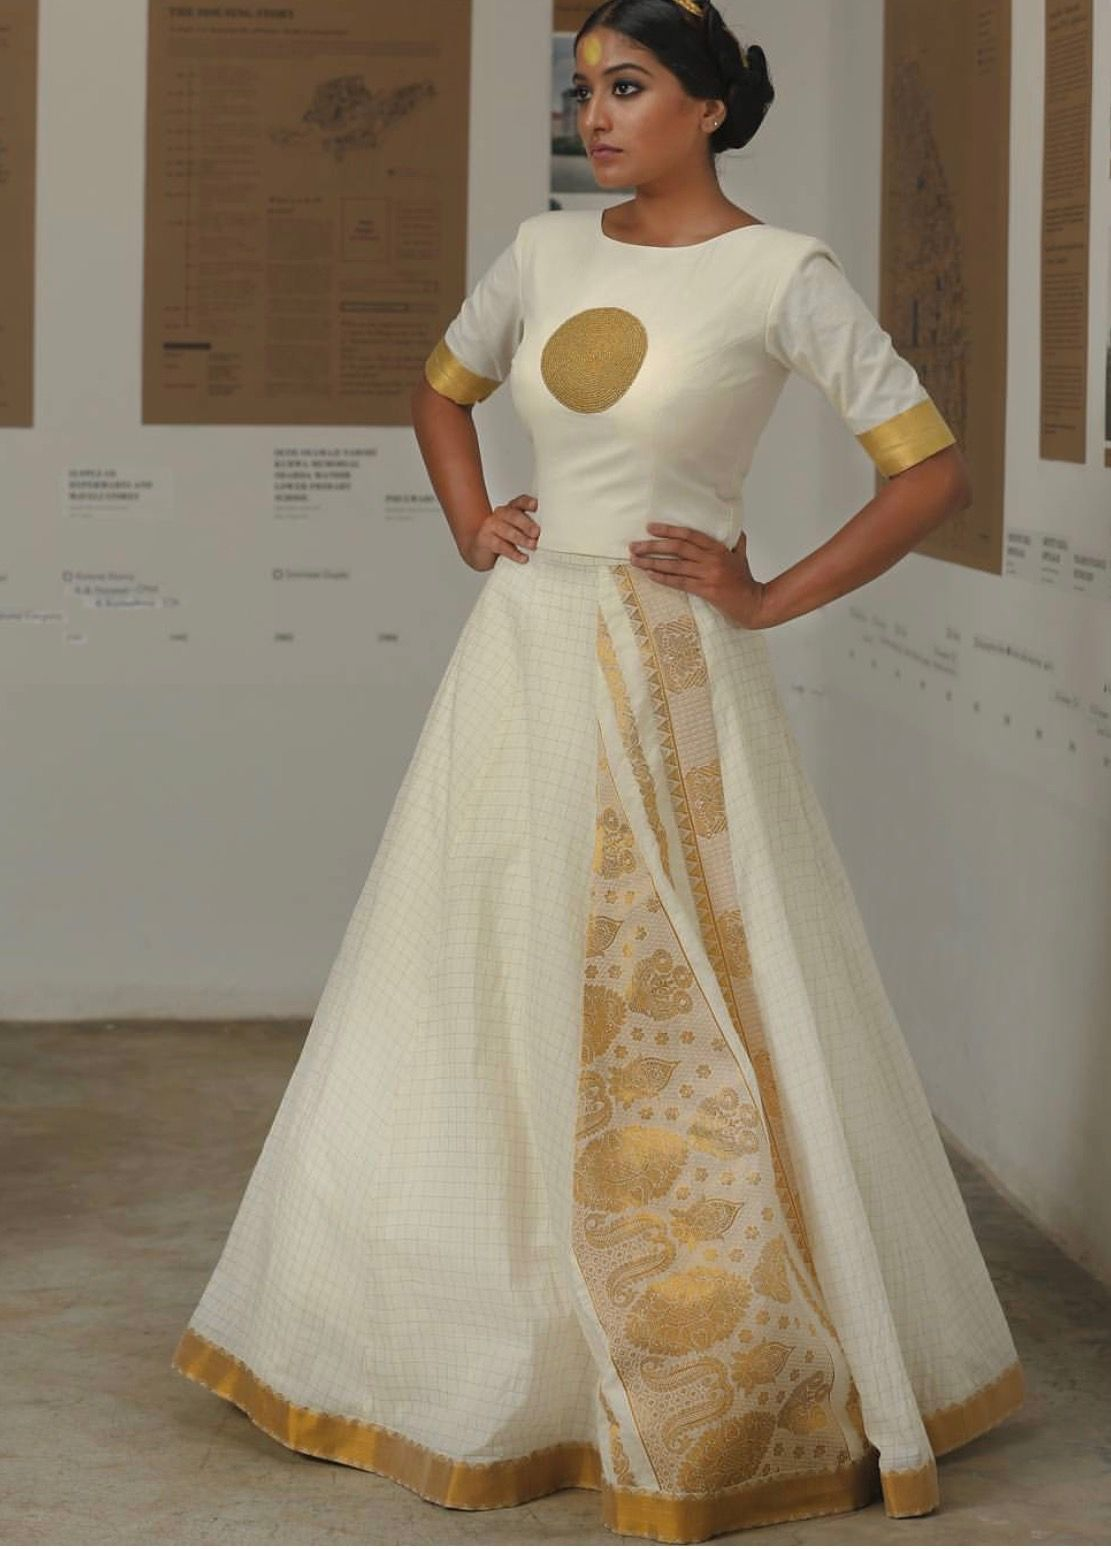 Kerala wedding reception dresses for the bride  Pin by Cynthia Mela on Robes et jupes  Pinterest  Saree Indian